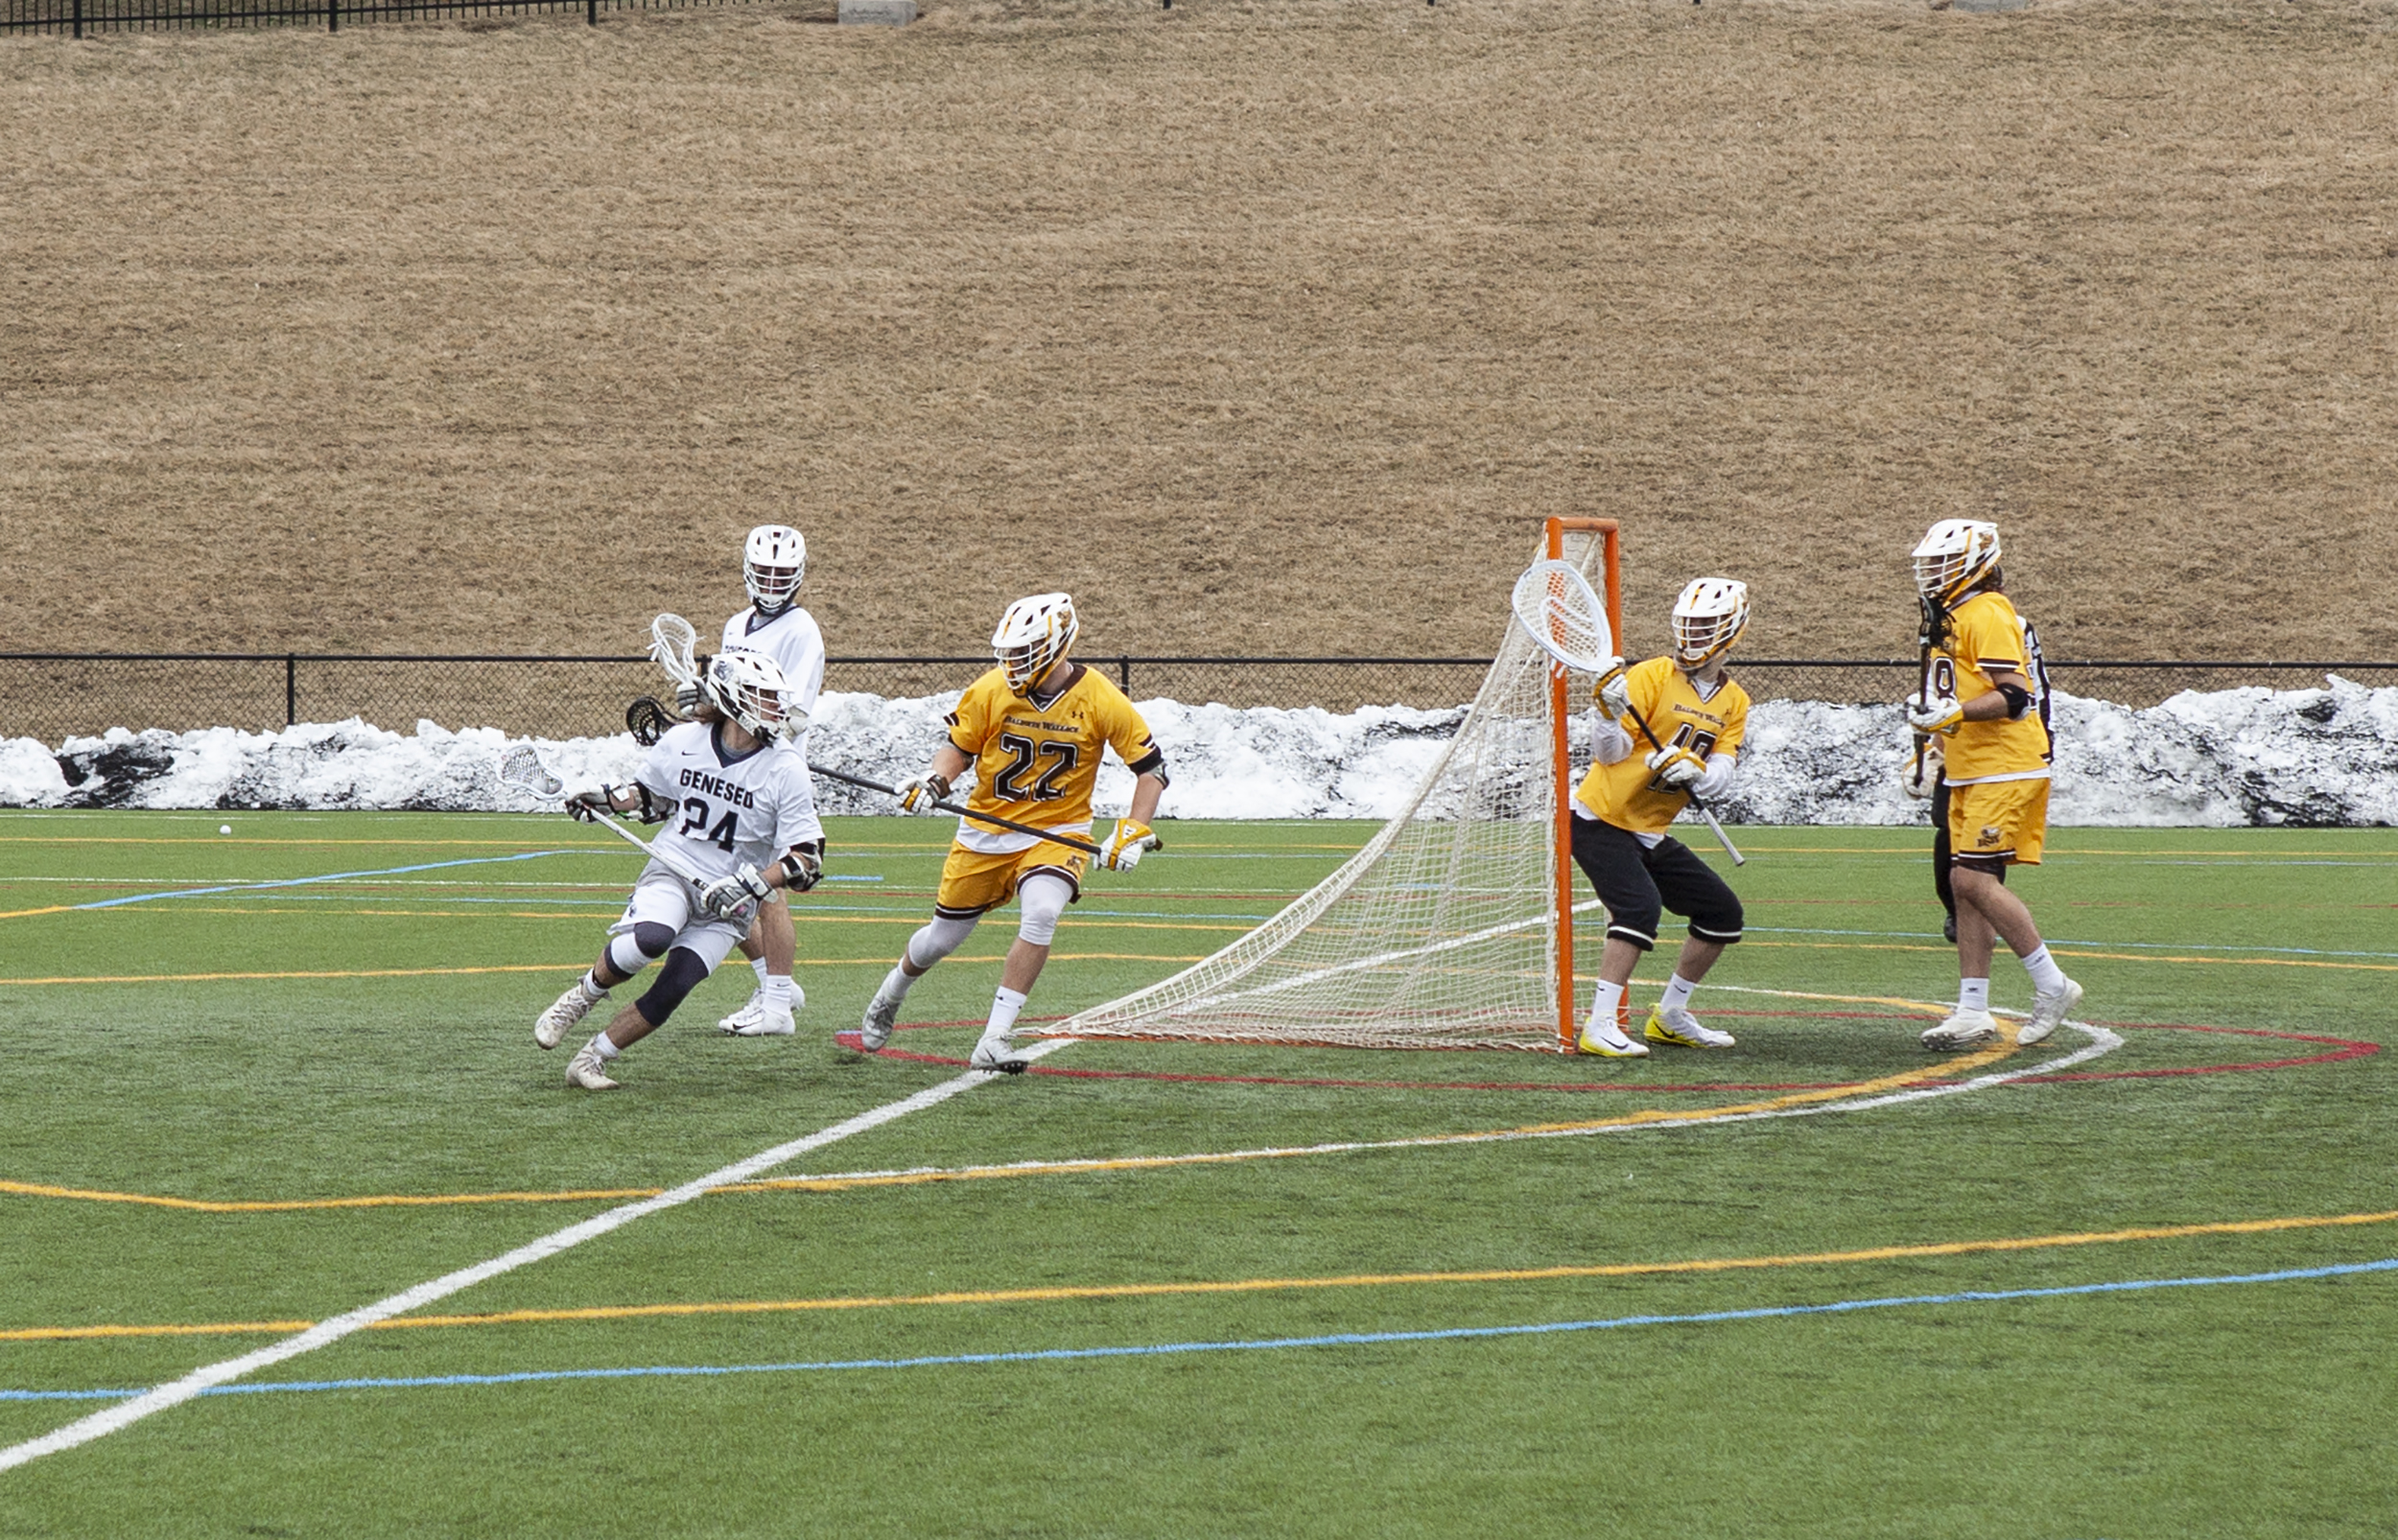 Junior attacker Patrick Morris carries the ball behind the Baldwin Wallace Yellowjackets' goal in the team's game on Wednesday March 13. Geneseo lost to the Yellowjackets 13-10 (Udeshi Seneviratne/Photo Editor).